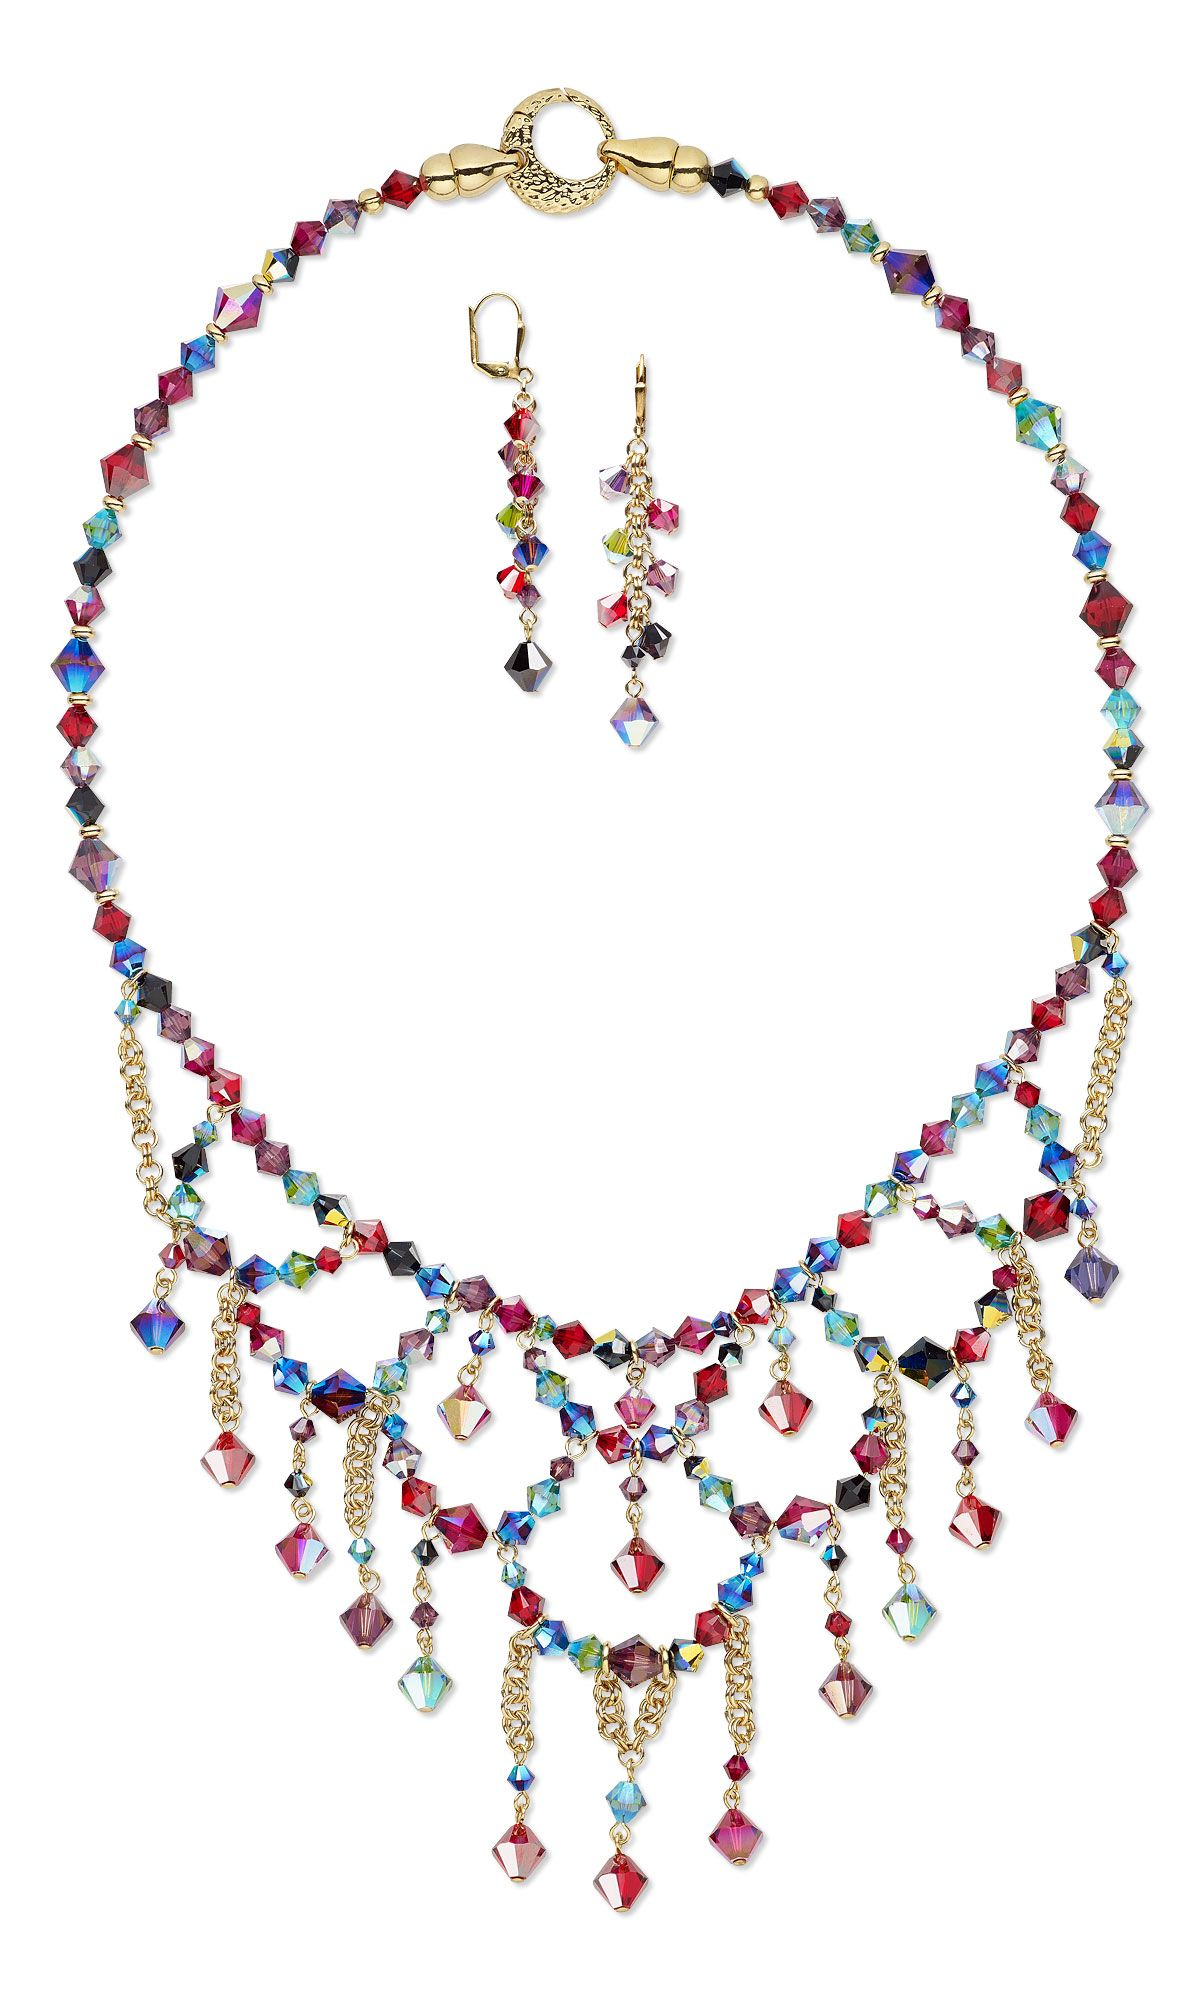 Jewelry Design - Bib-Style Necklace and Earring Set with Swarovski ...